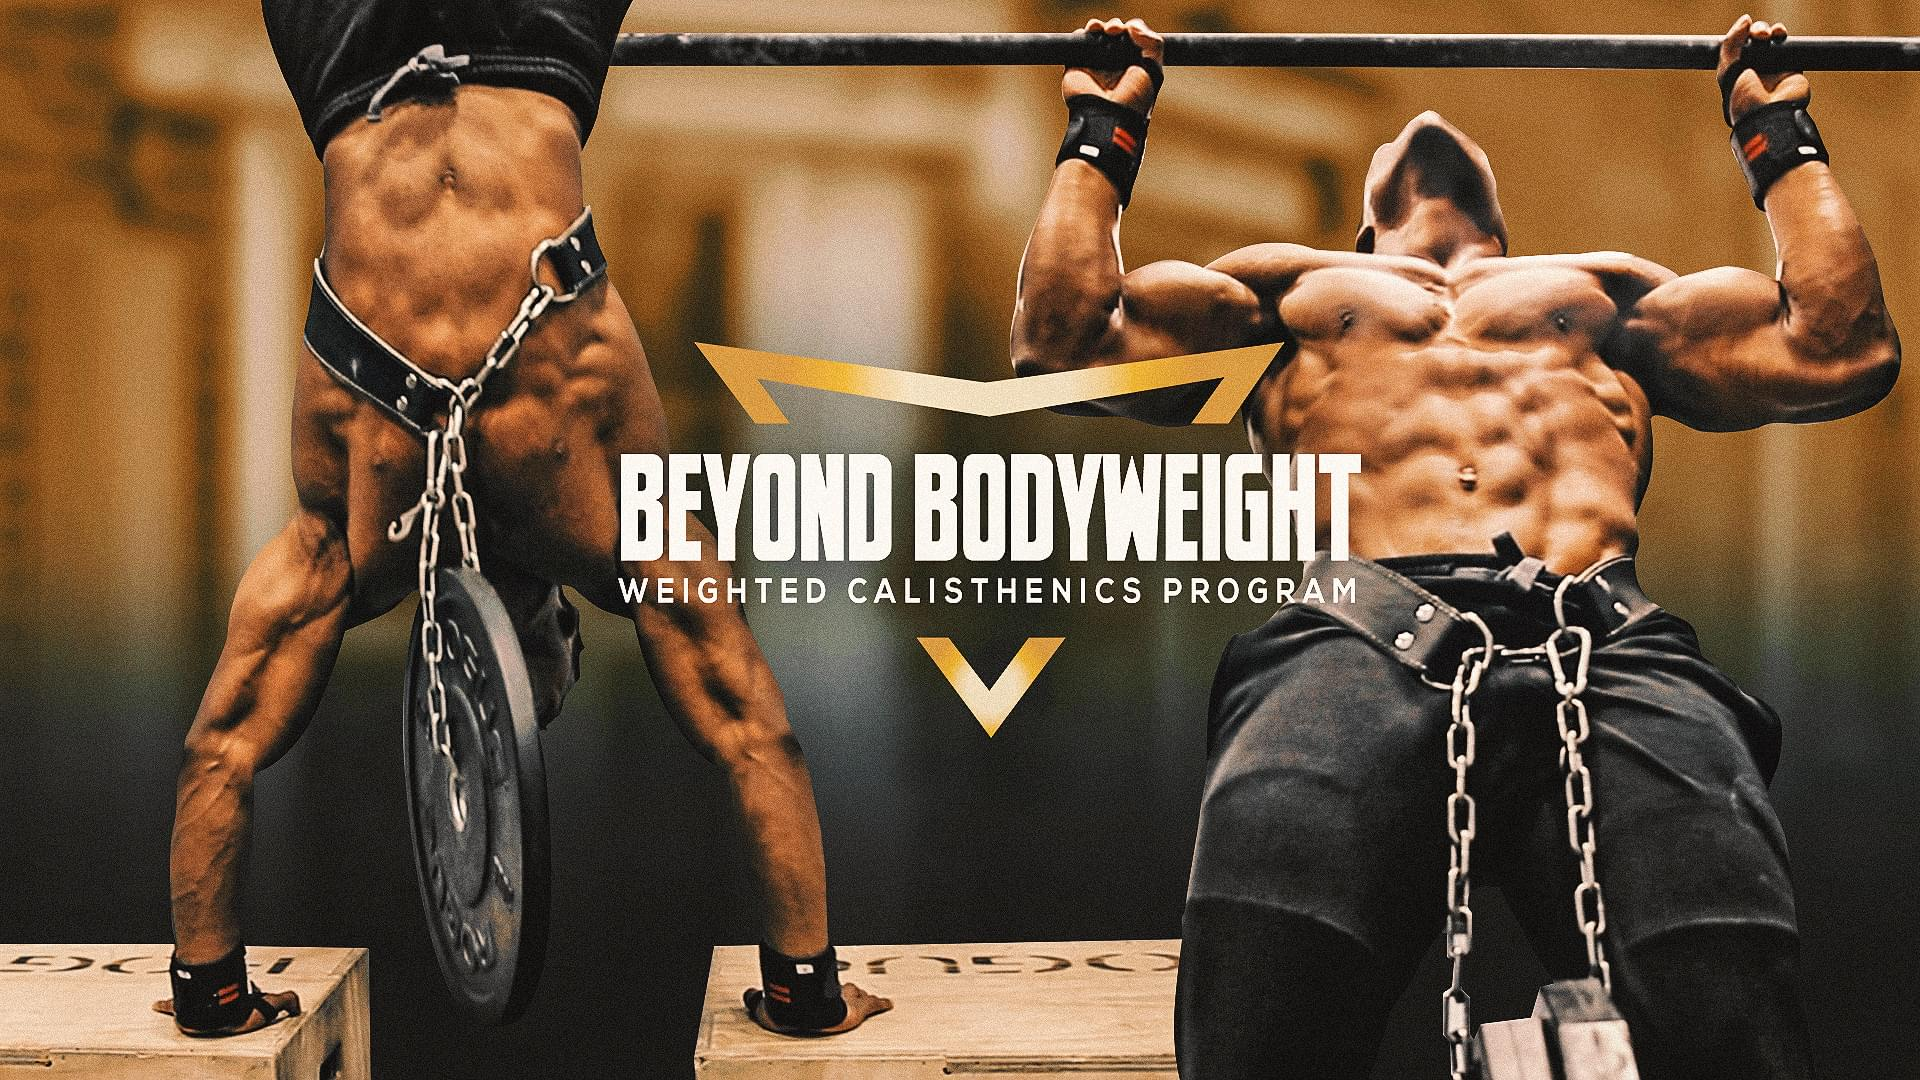 Beyond BodyWeight